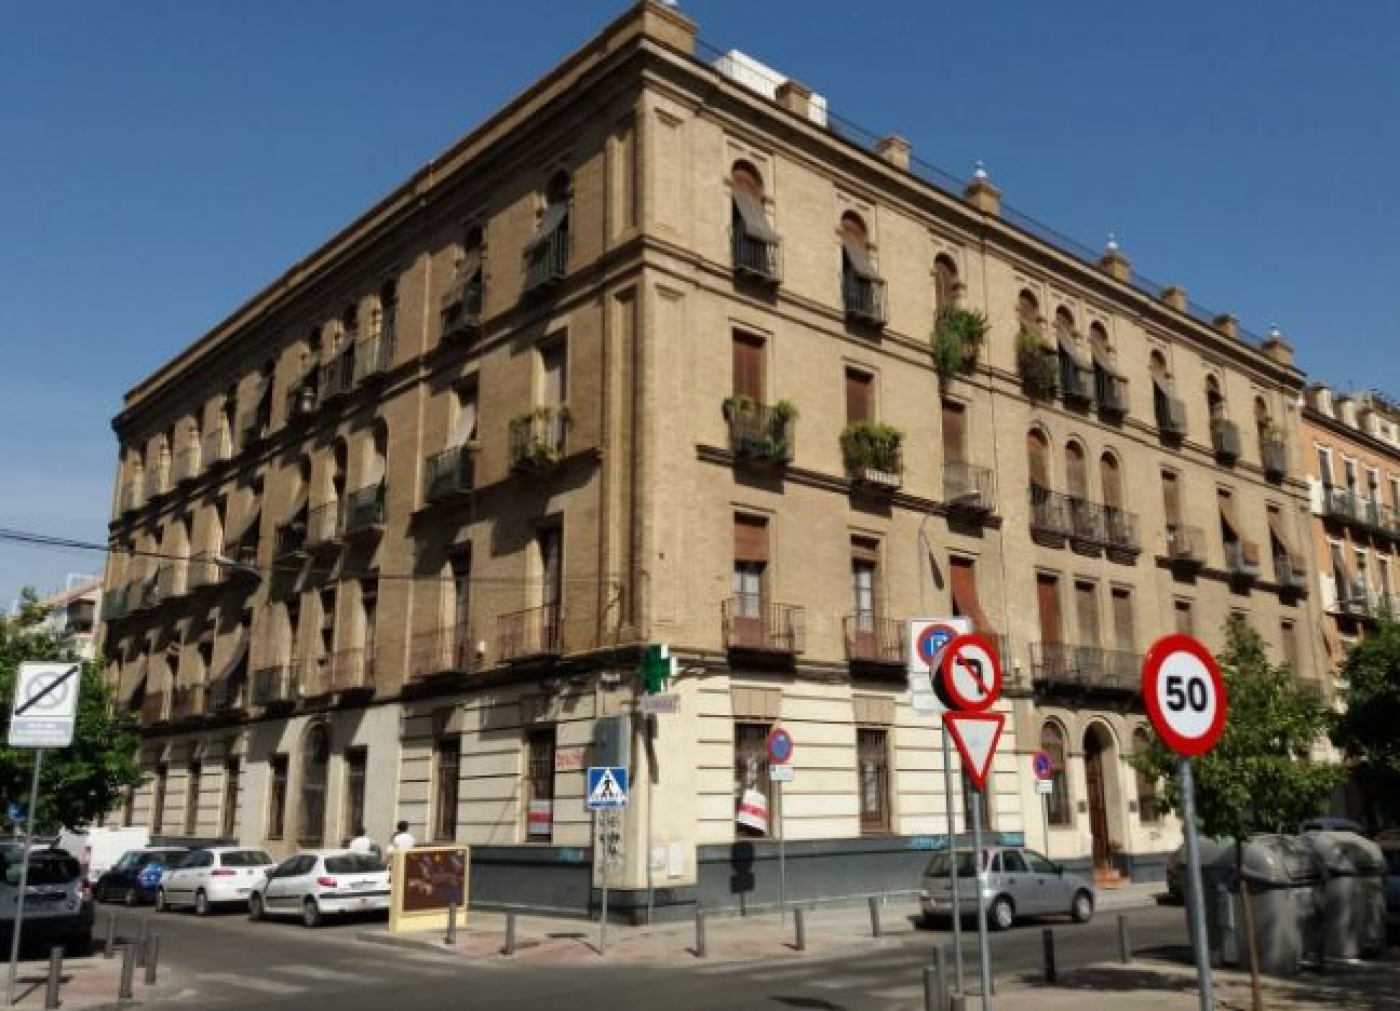 Bank properties in Sevilla